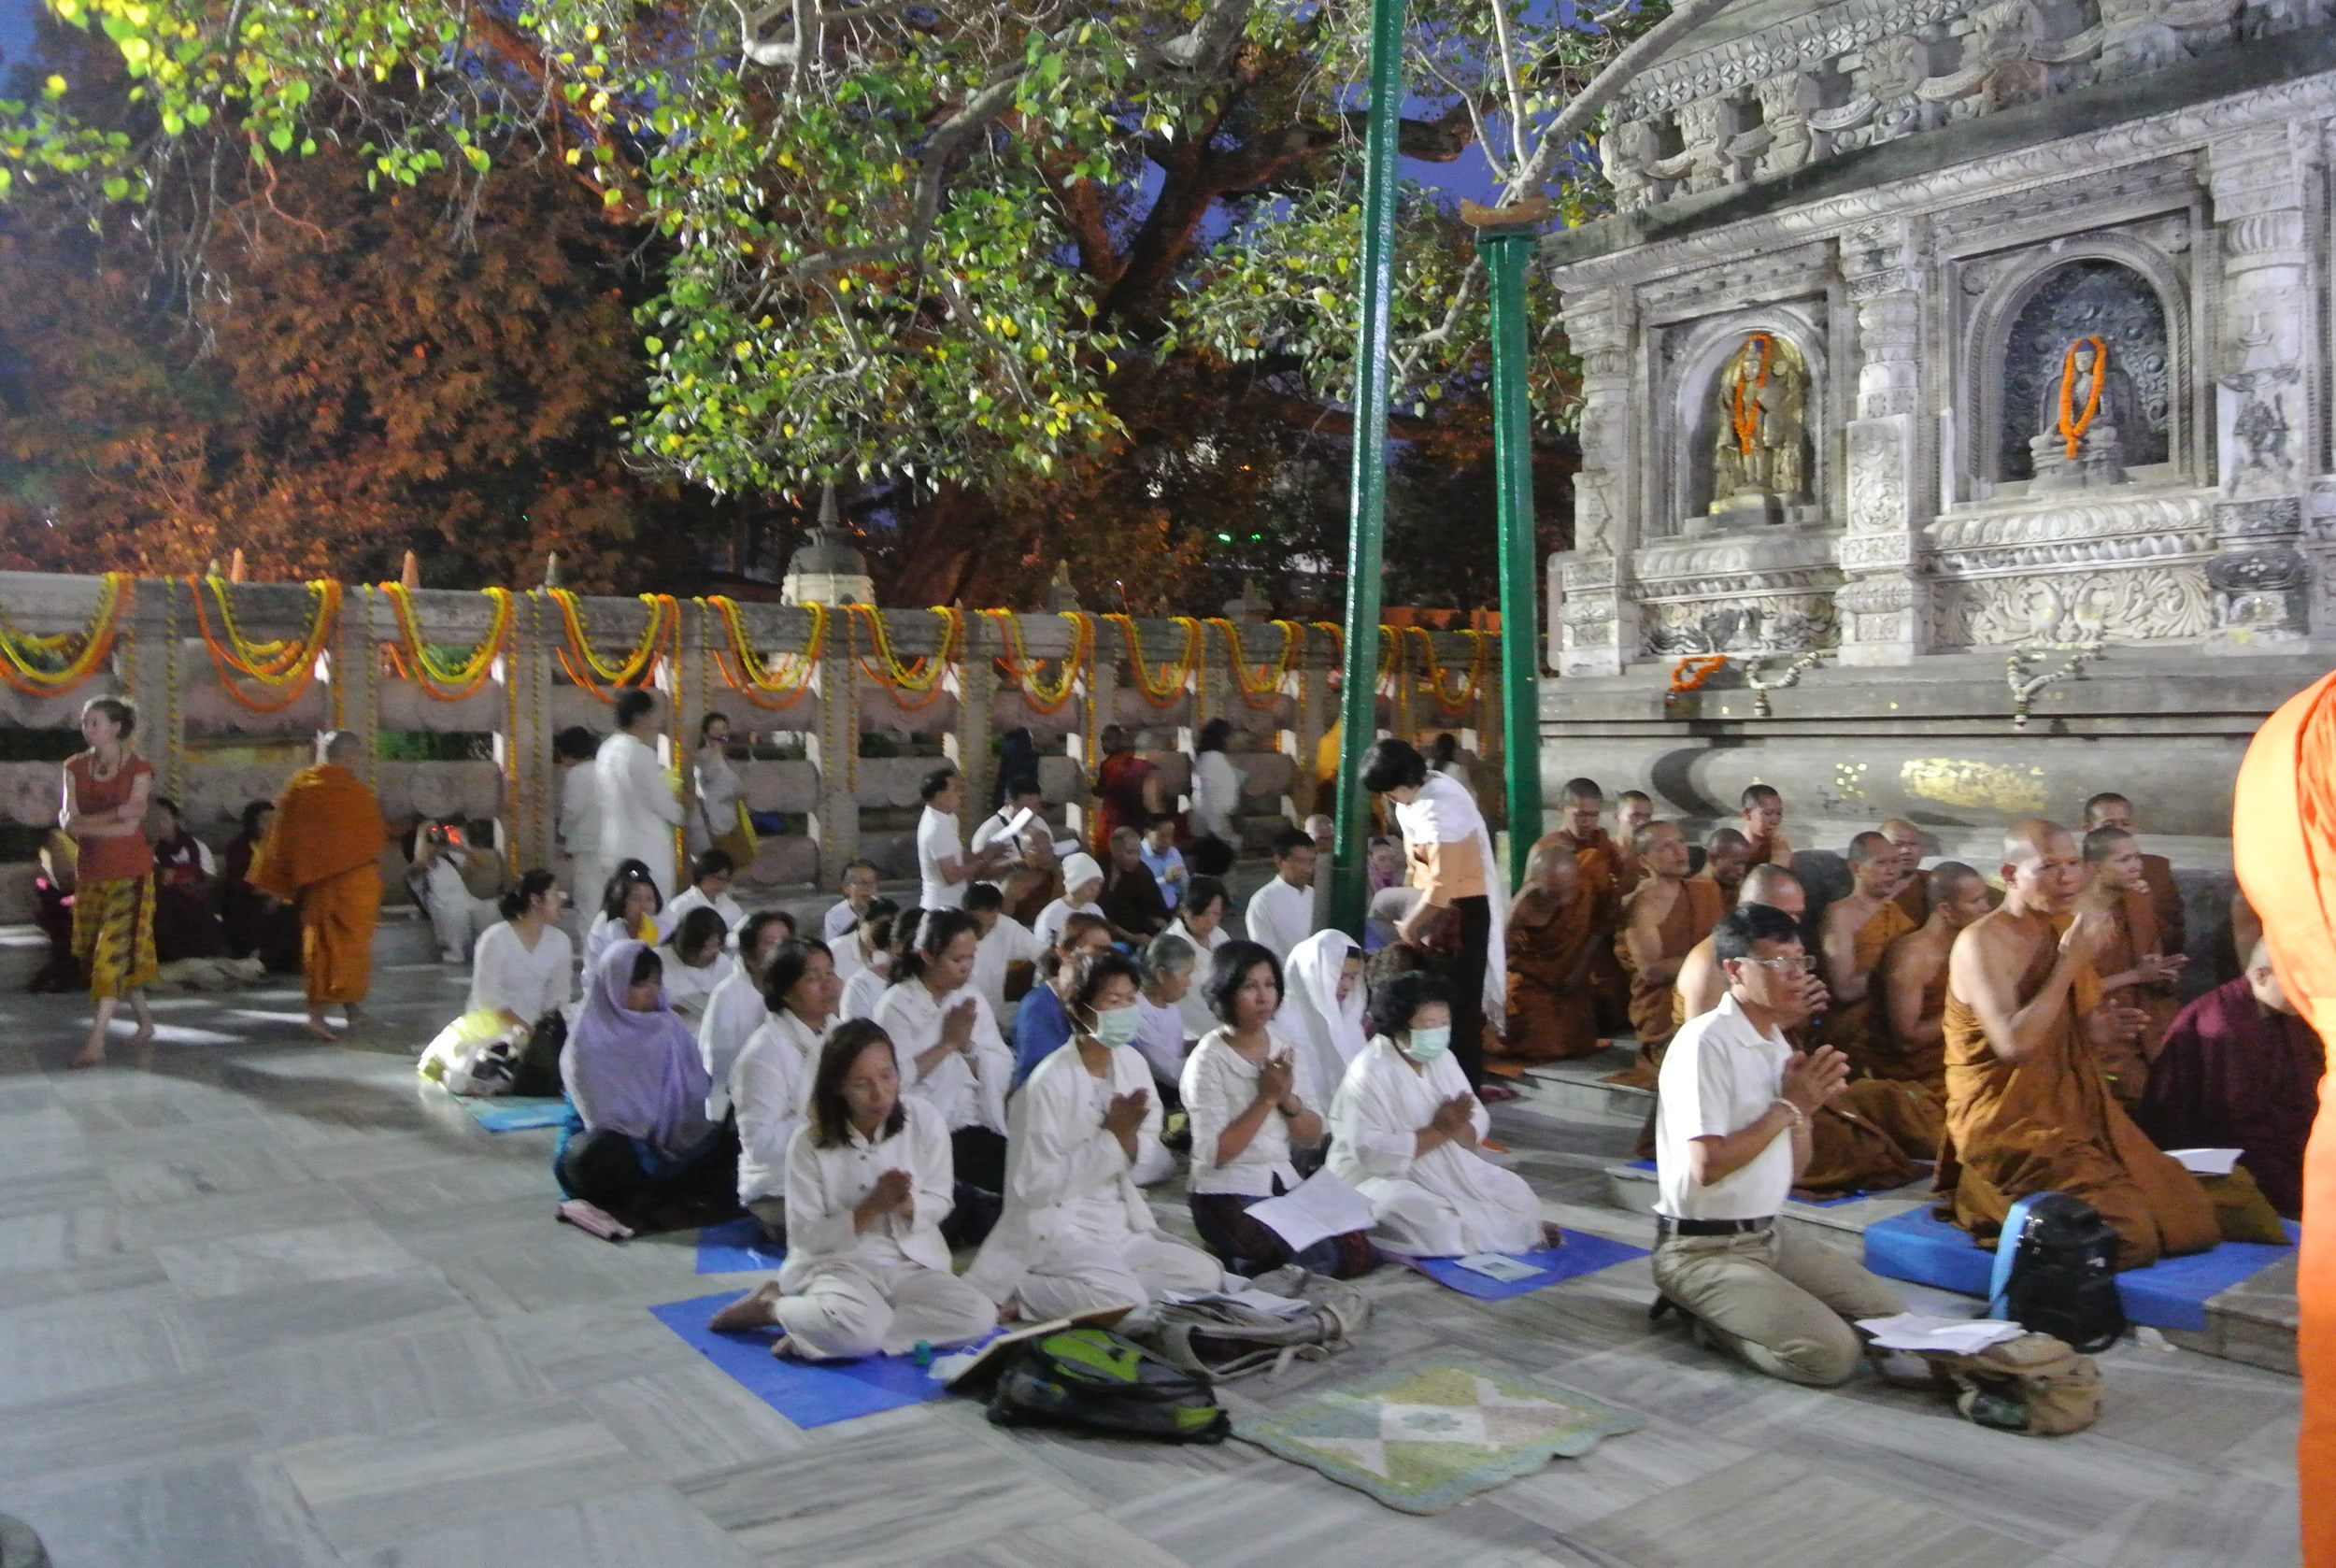 Monks and Thai Buddhist chanting by the Bodhi Tree at Maha Bodhi Temple